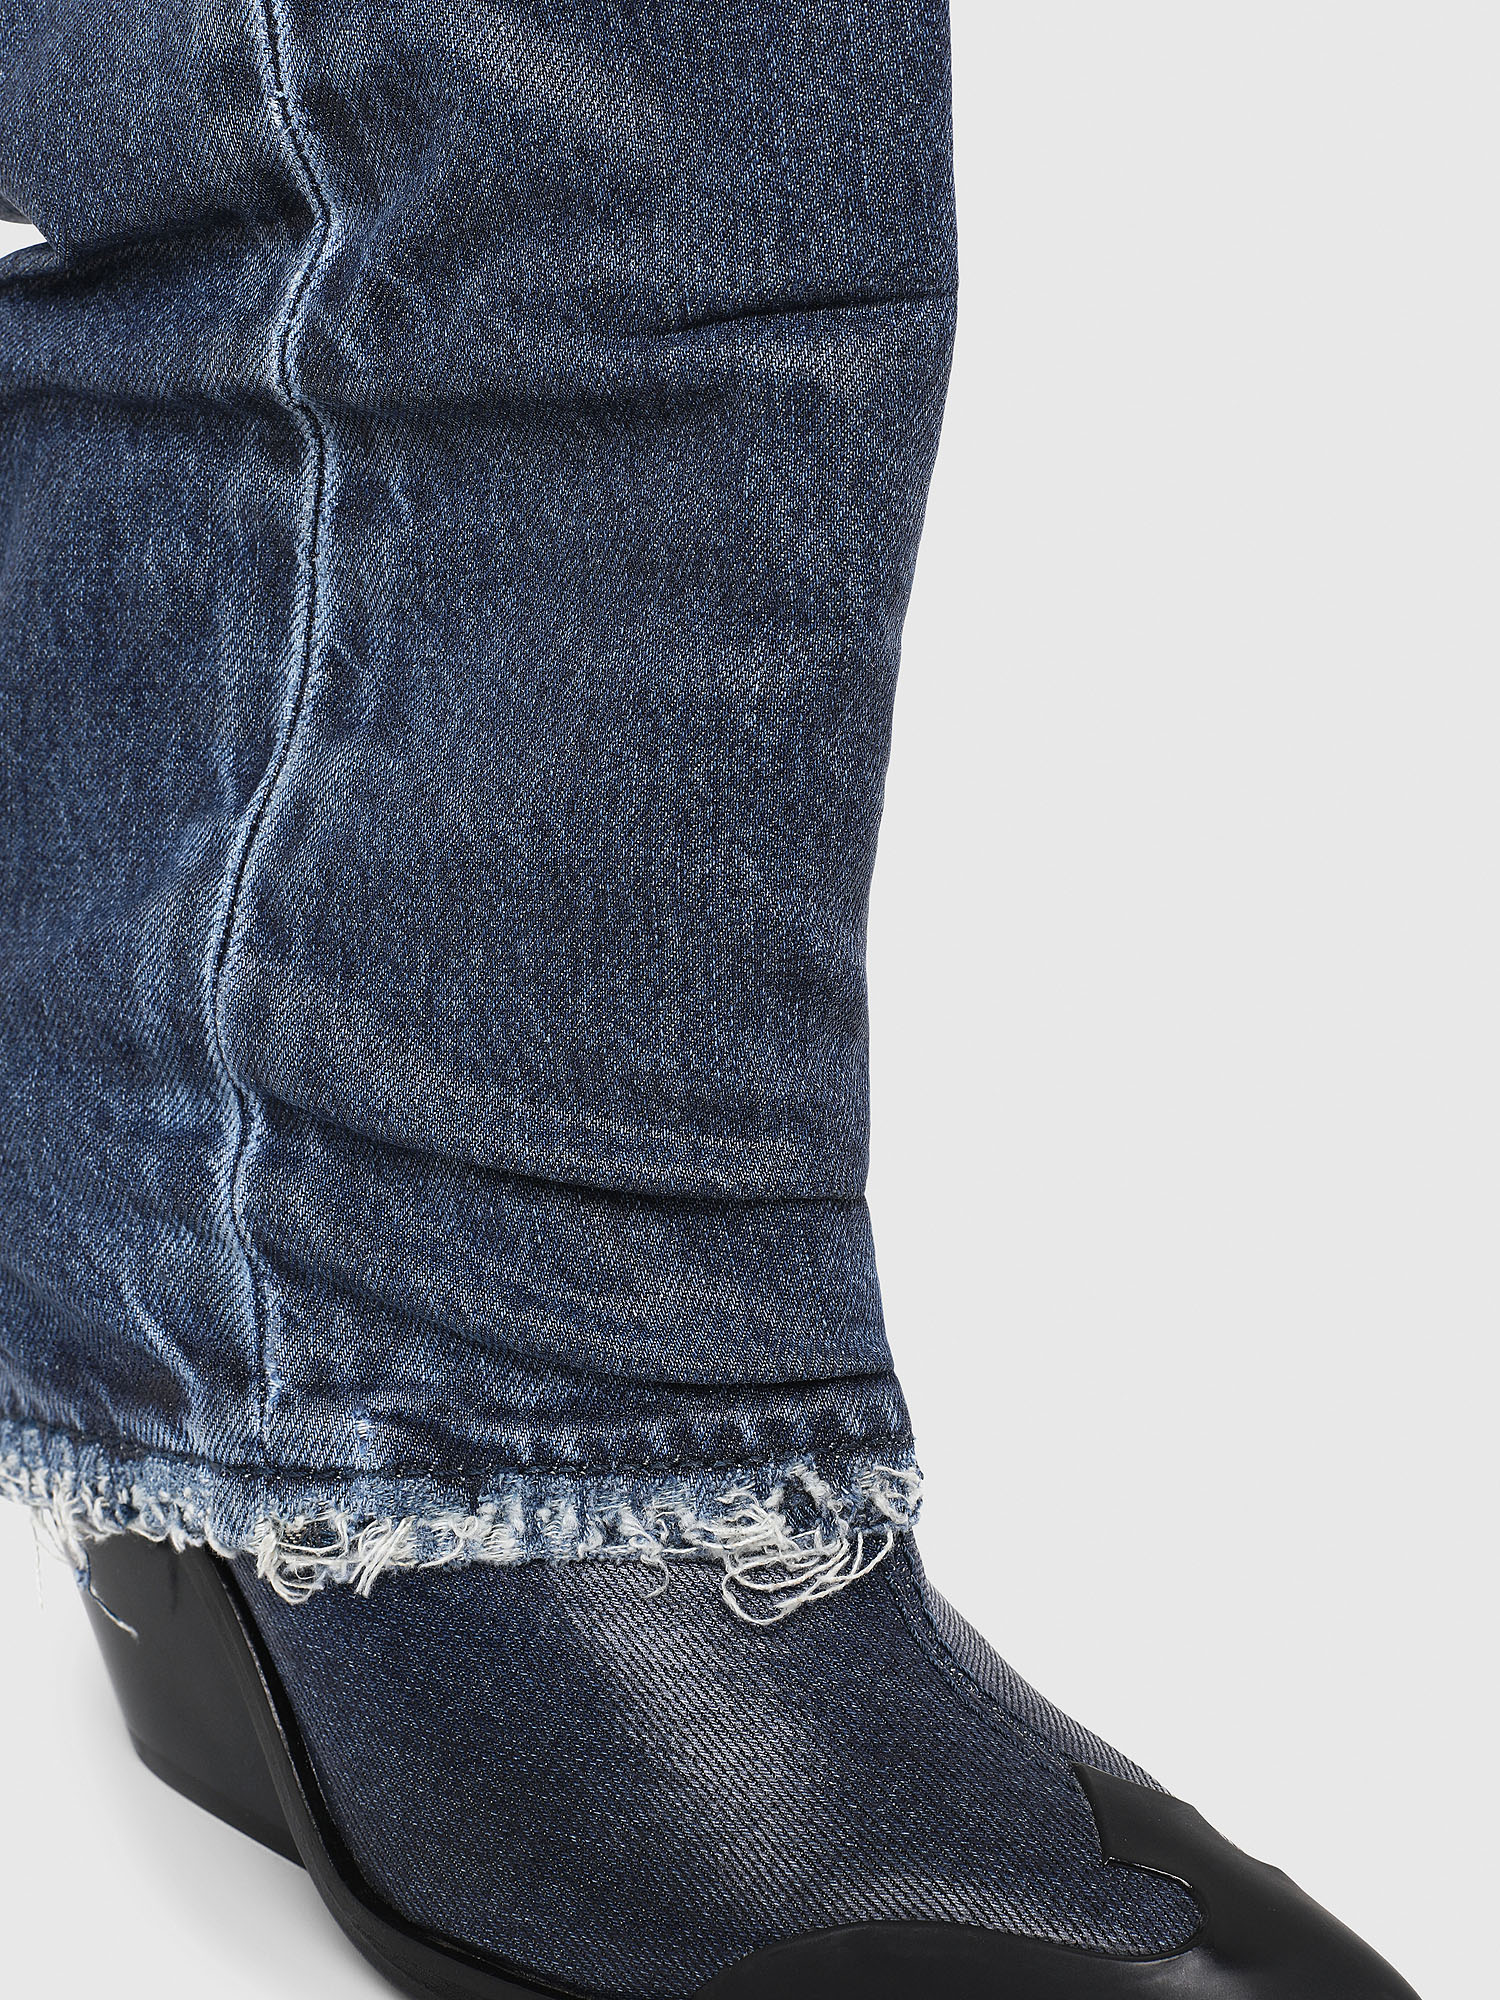 Diesel - D-WEST MB,  - Ankle Boots - Image 4